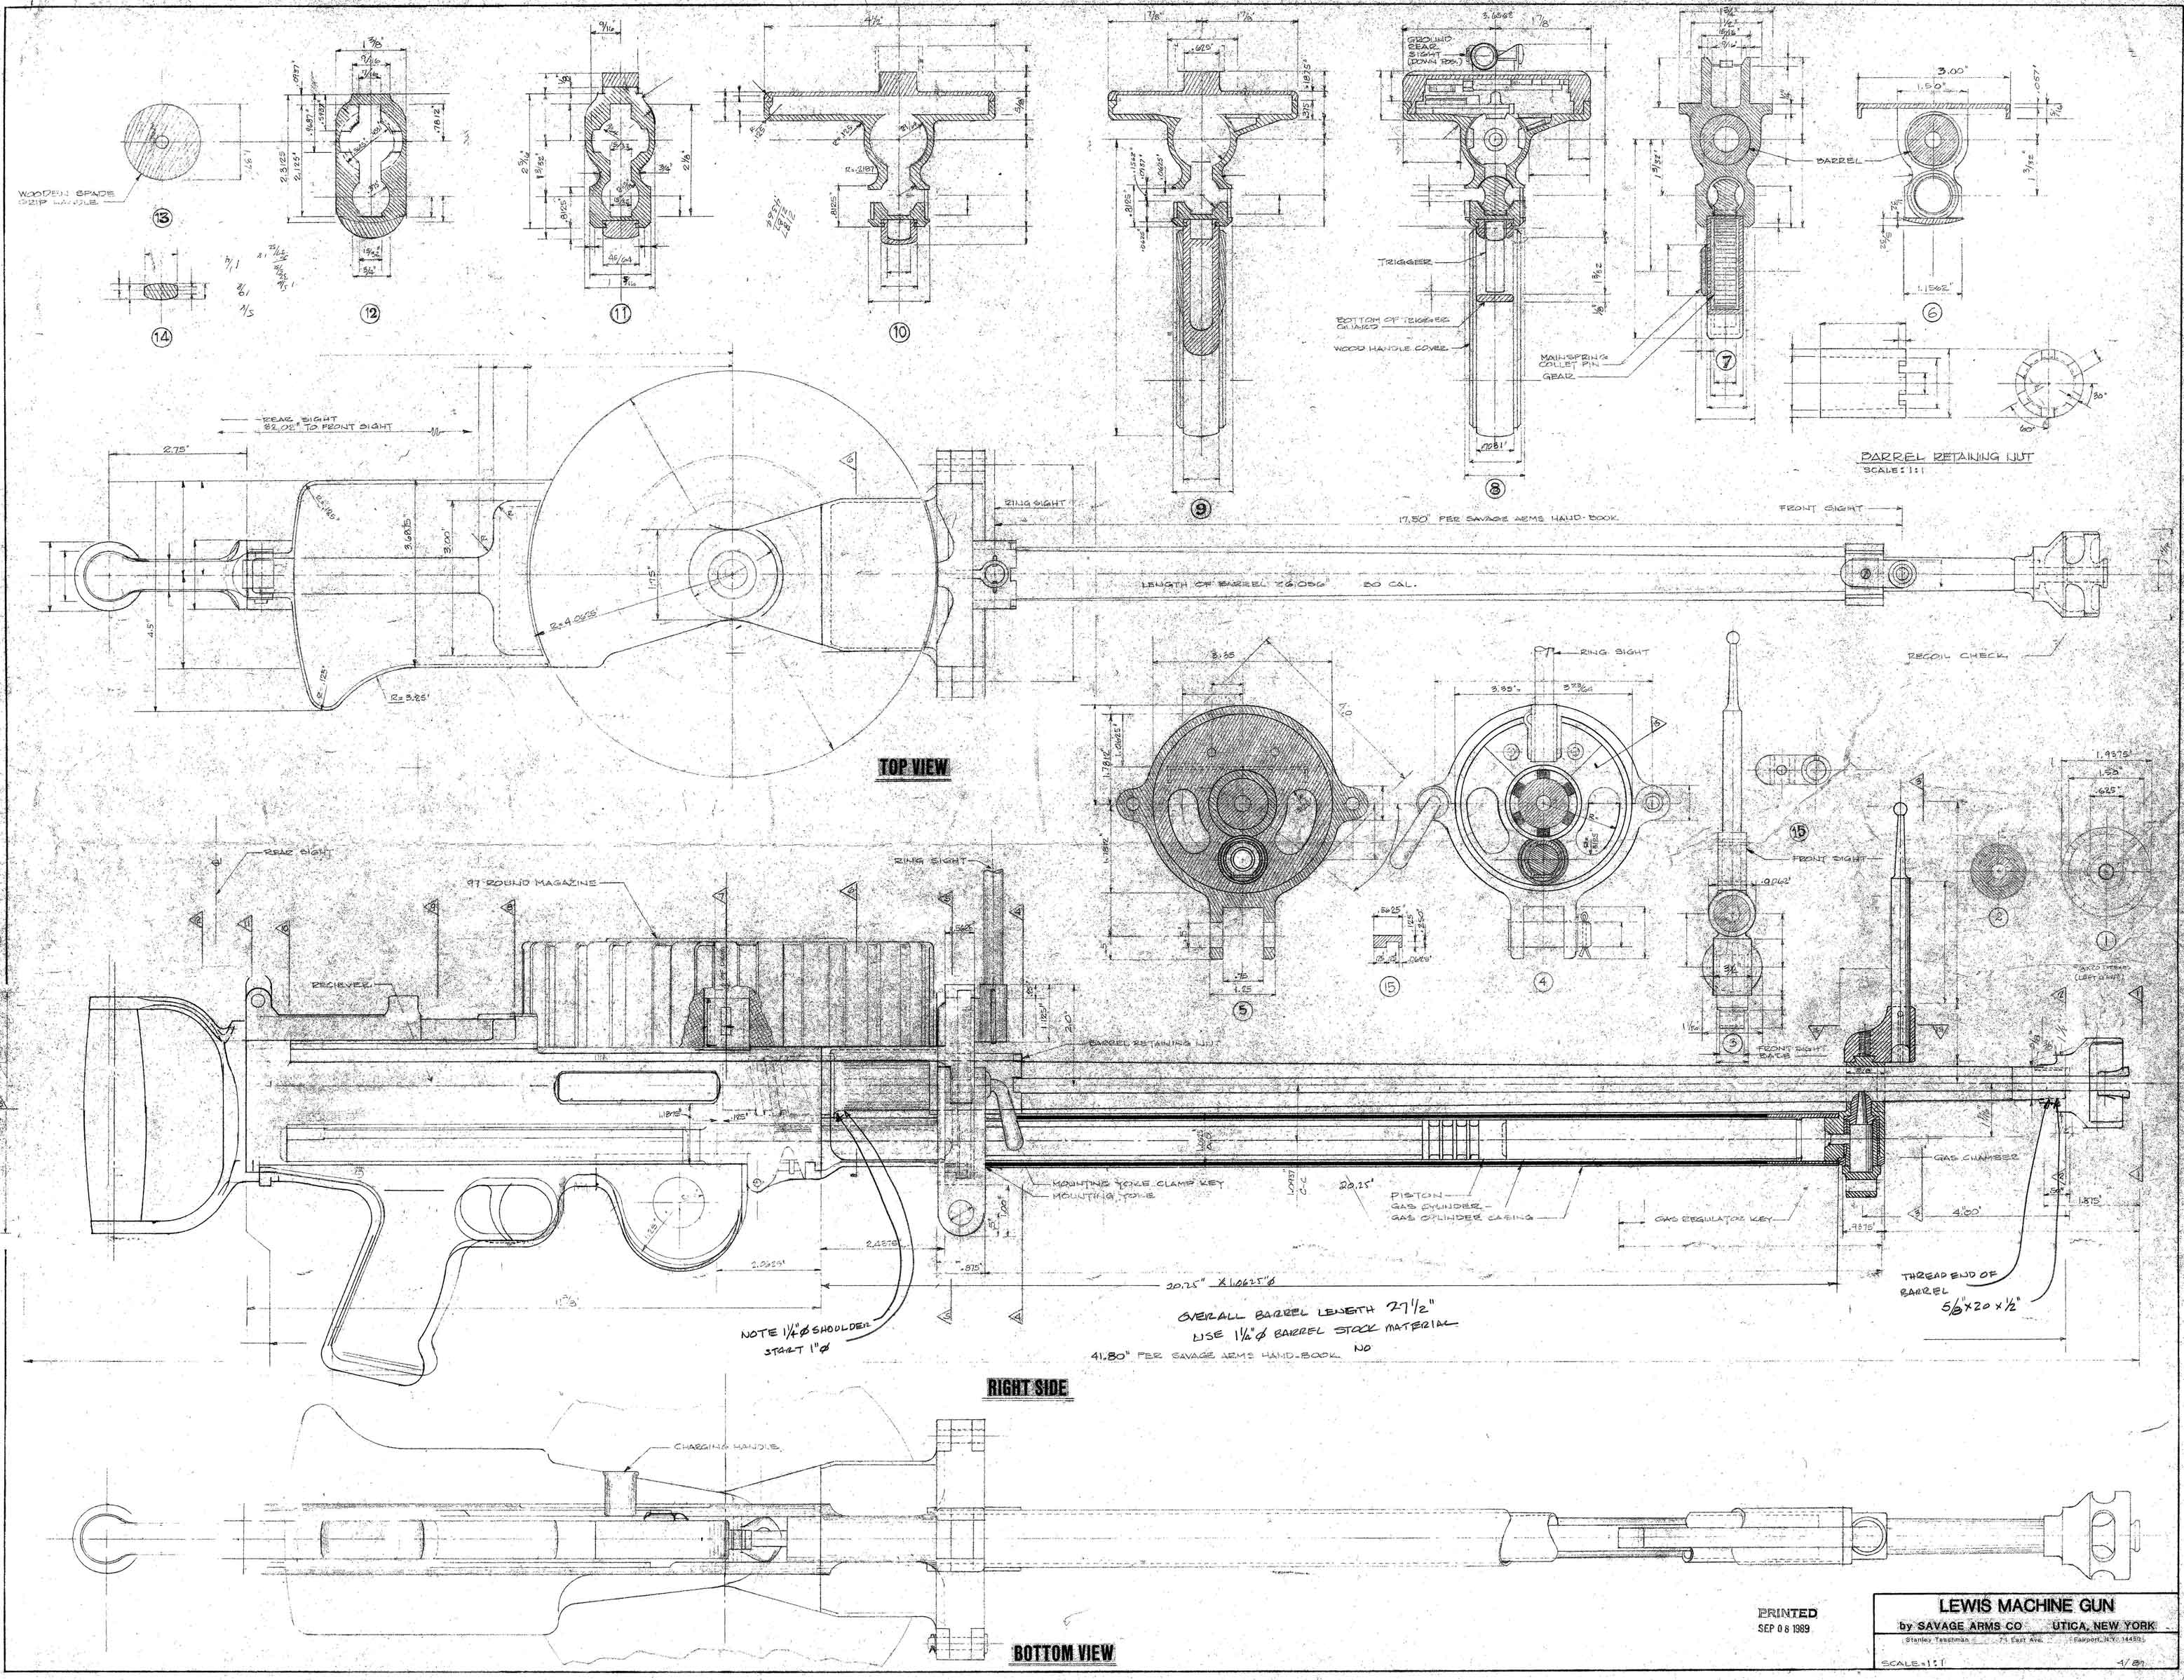 Lewis Machine Gun Blueprint Download Free Blueprint For